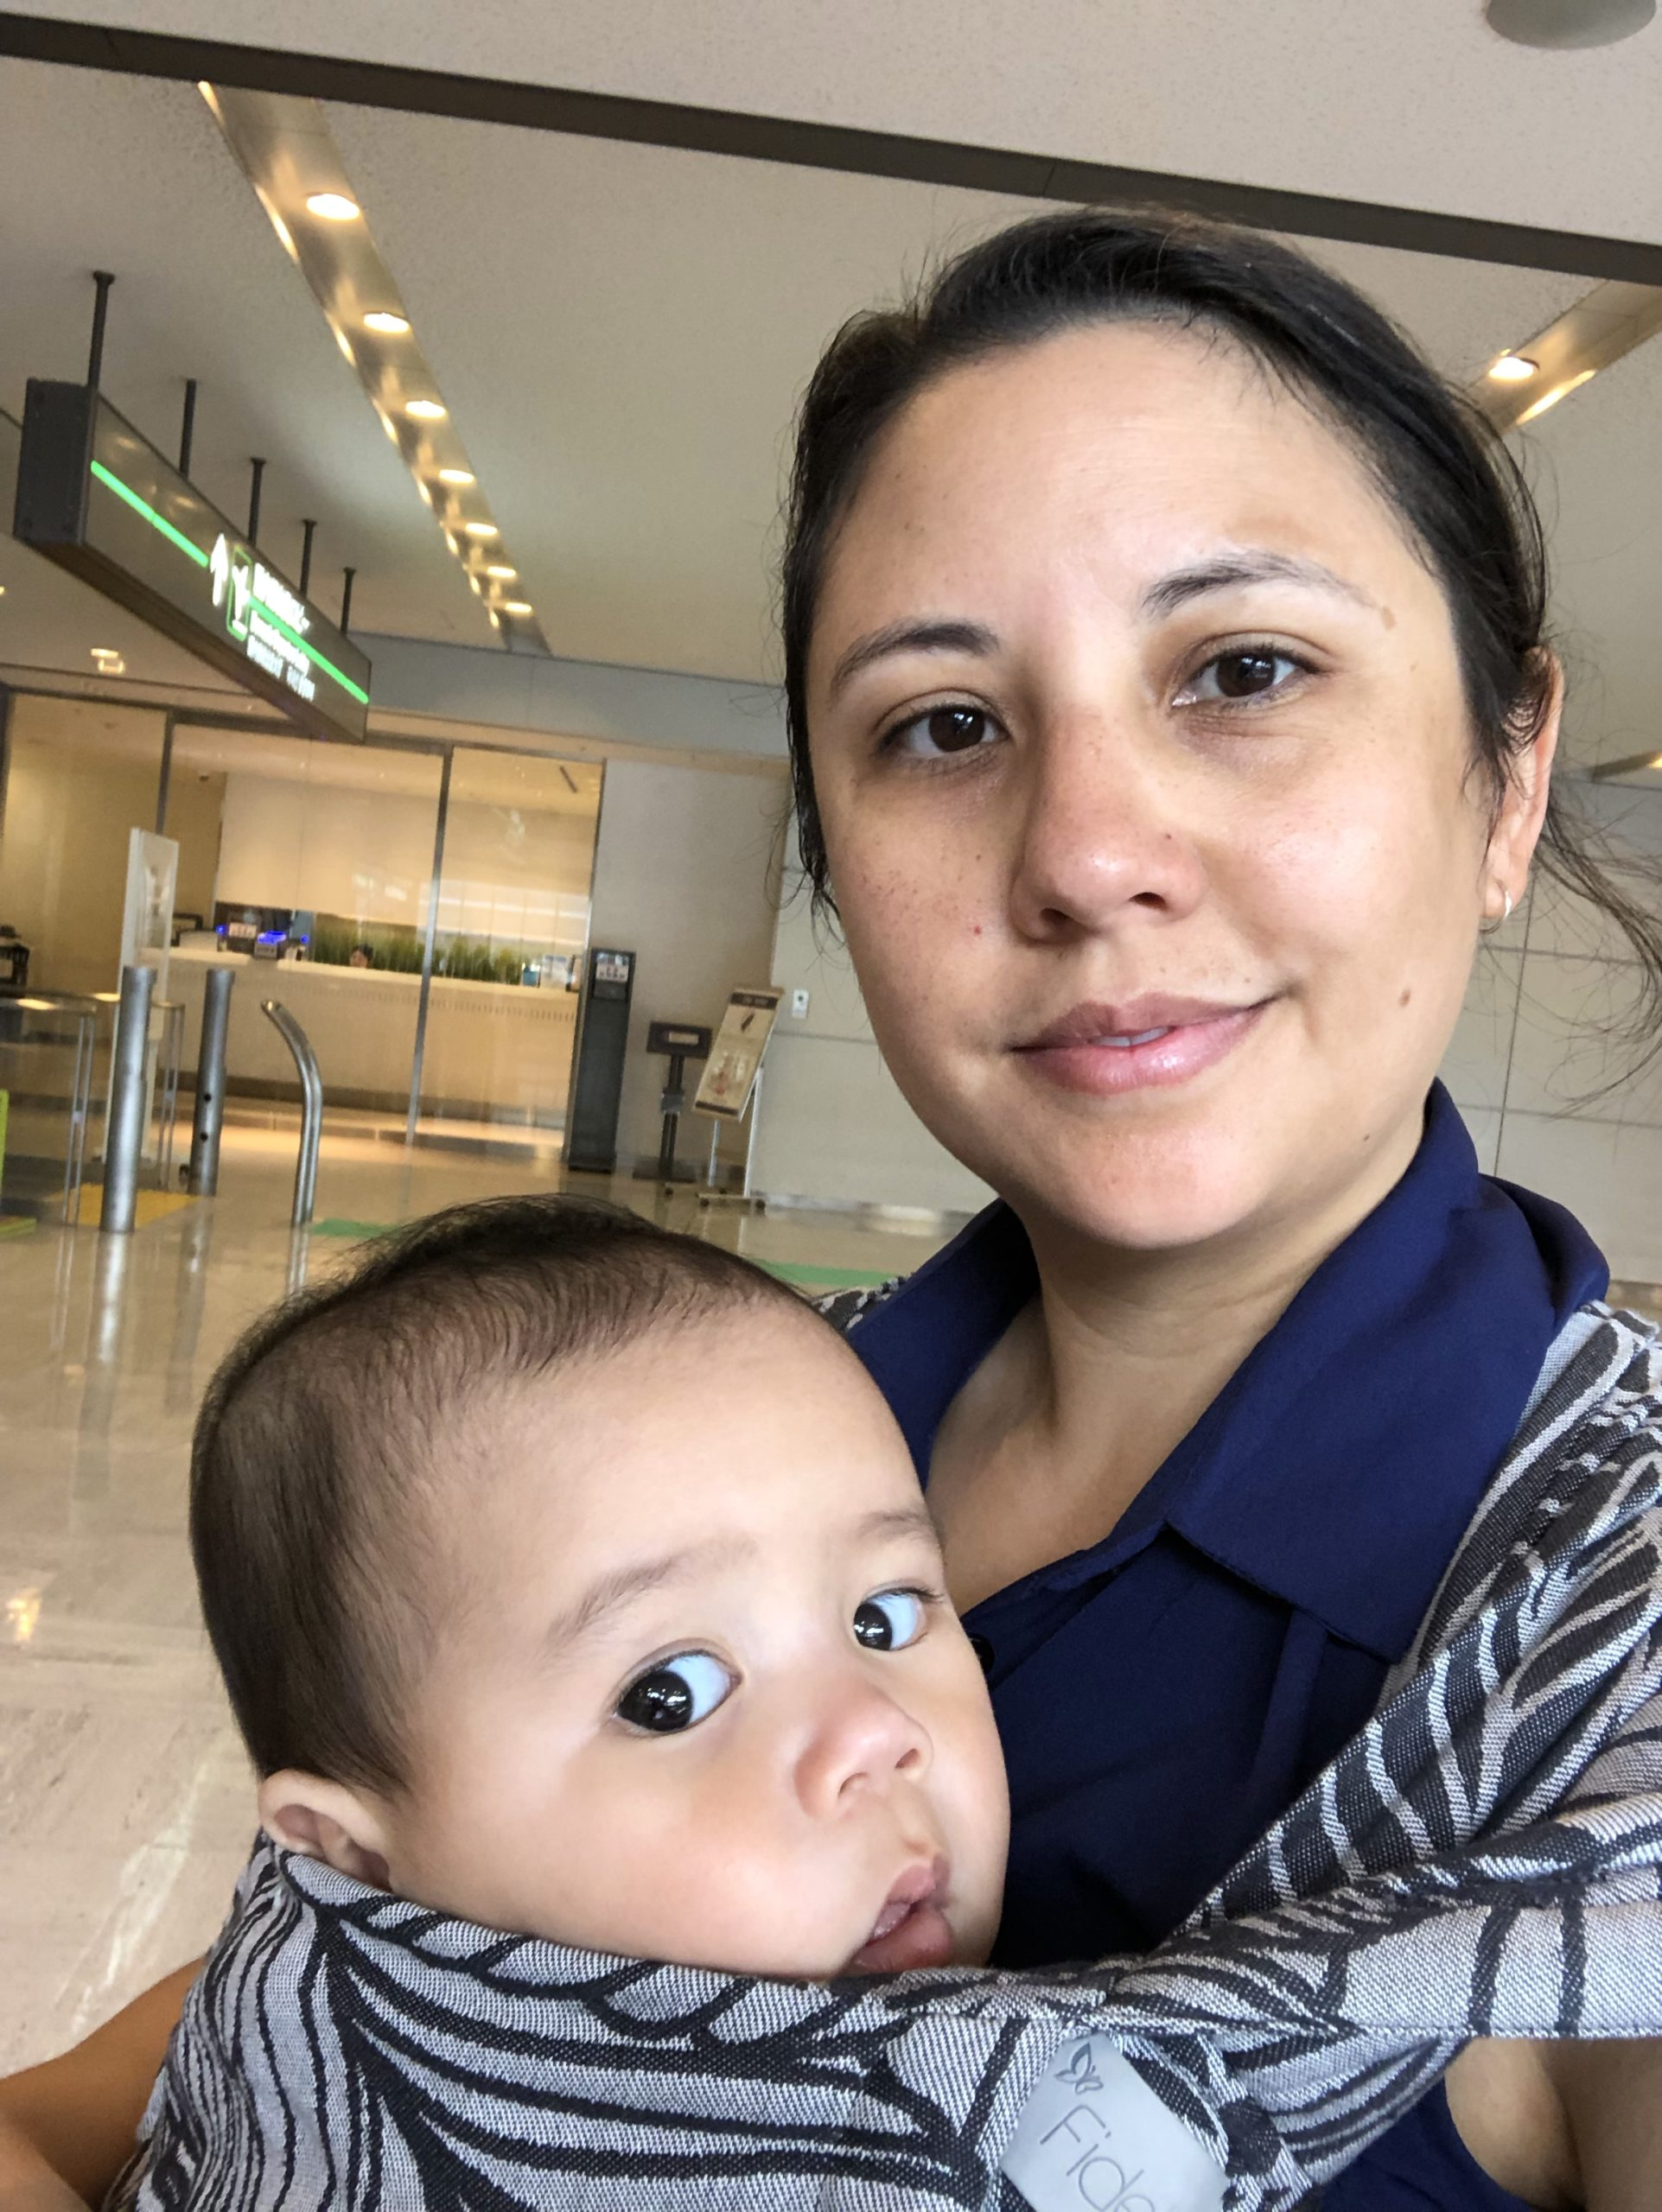 Tired mum with baby in carrier at airport